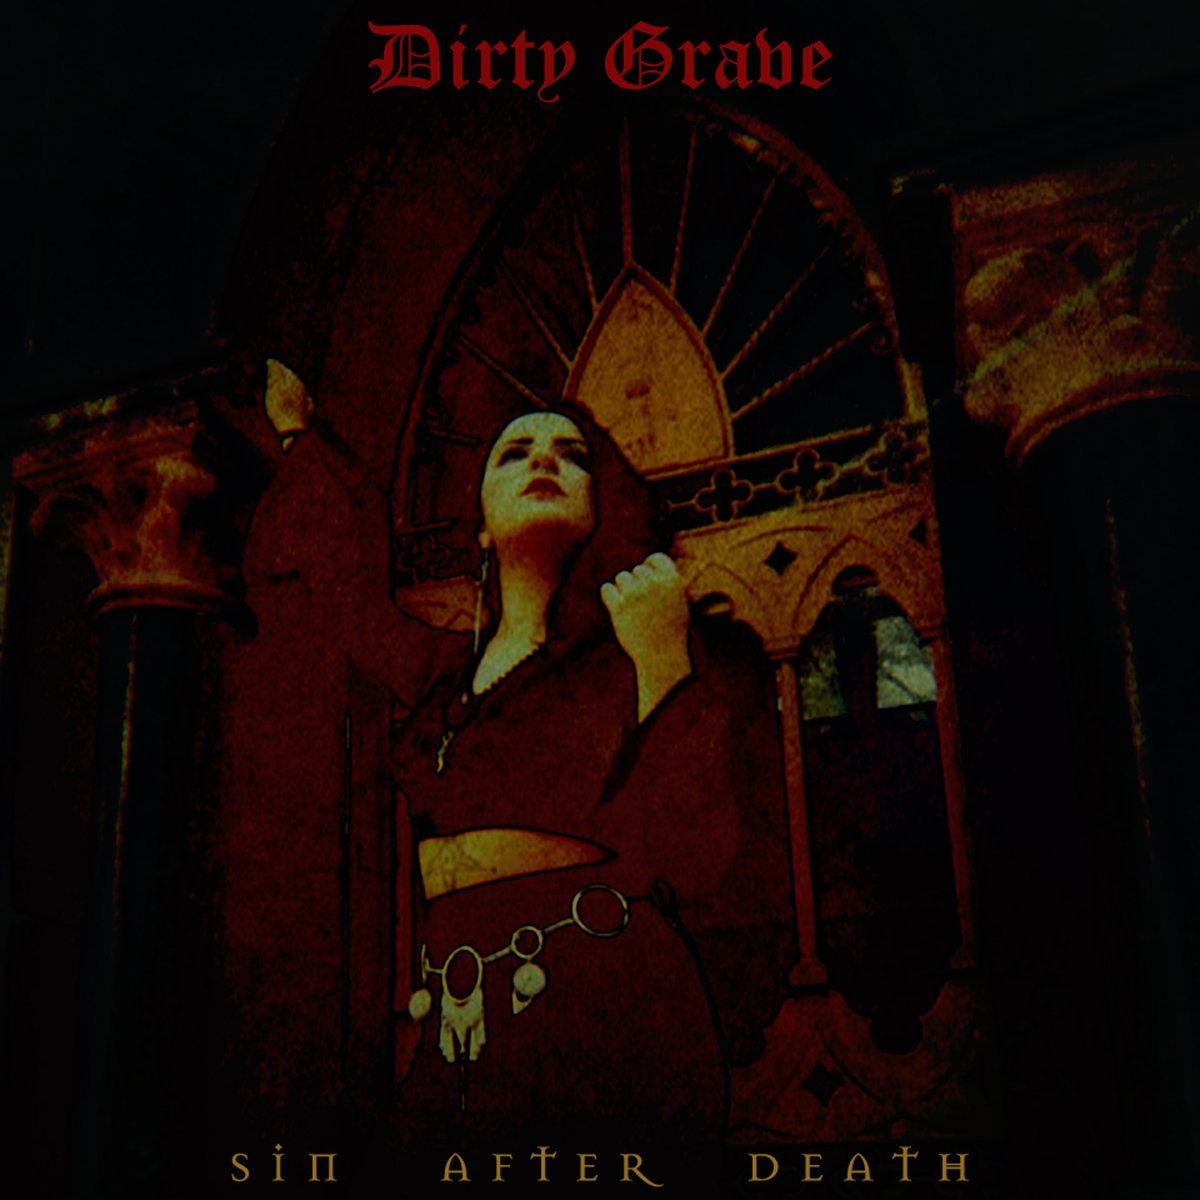 Dirty Grave - Sin After Death